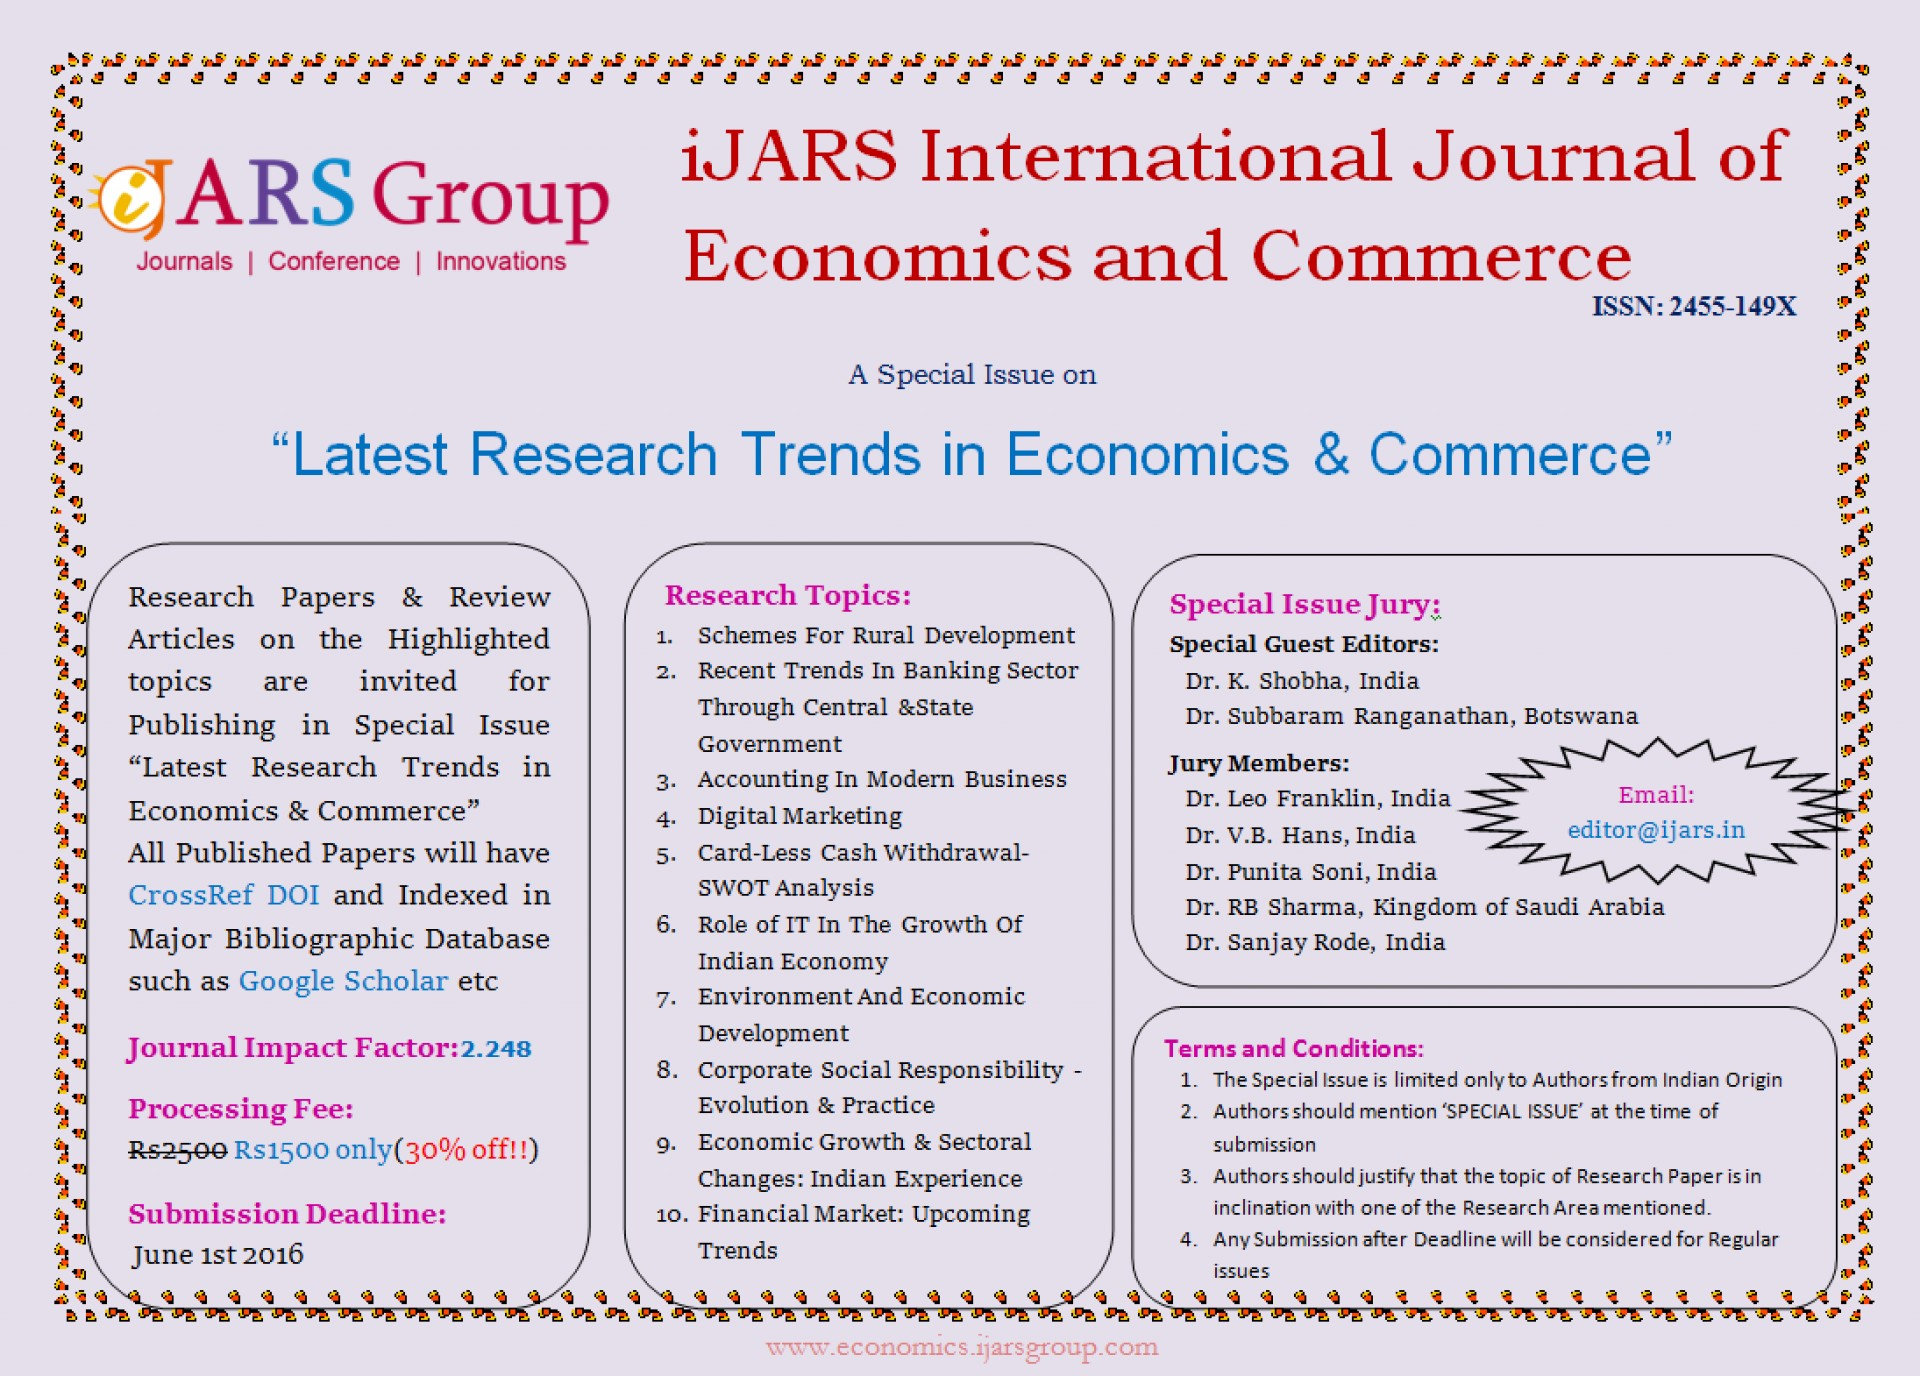 009 Database Researchs Special Imagewfldx4 Stirring Research Papers Pdf Online Distributed 1920